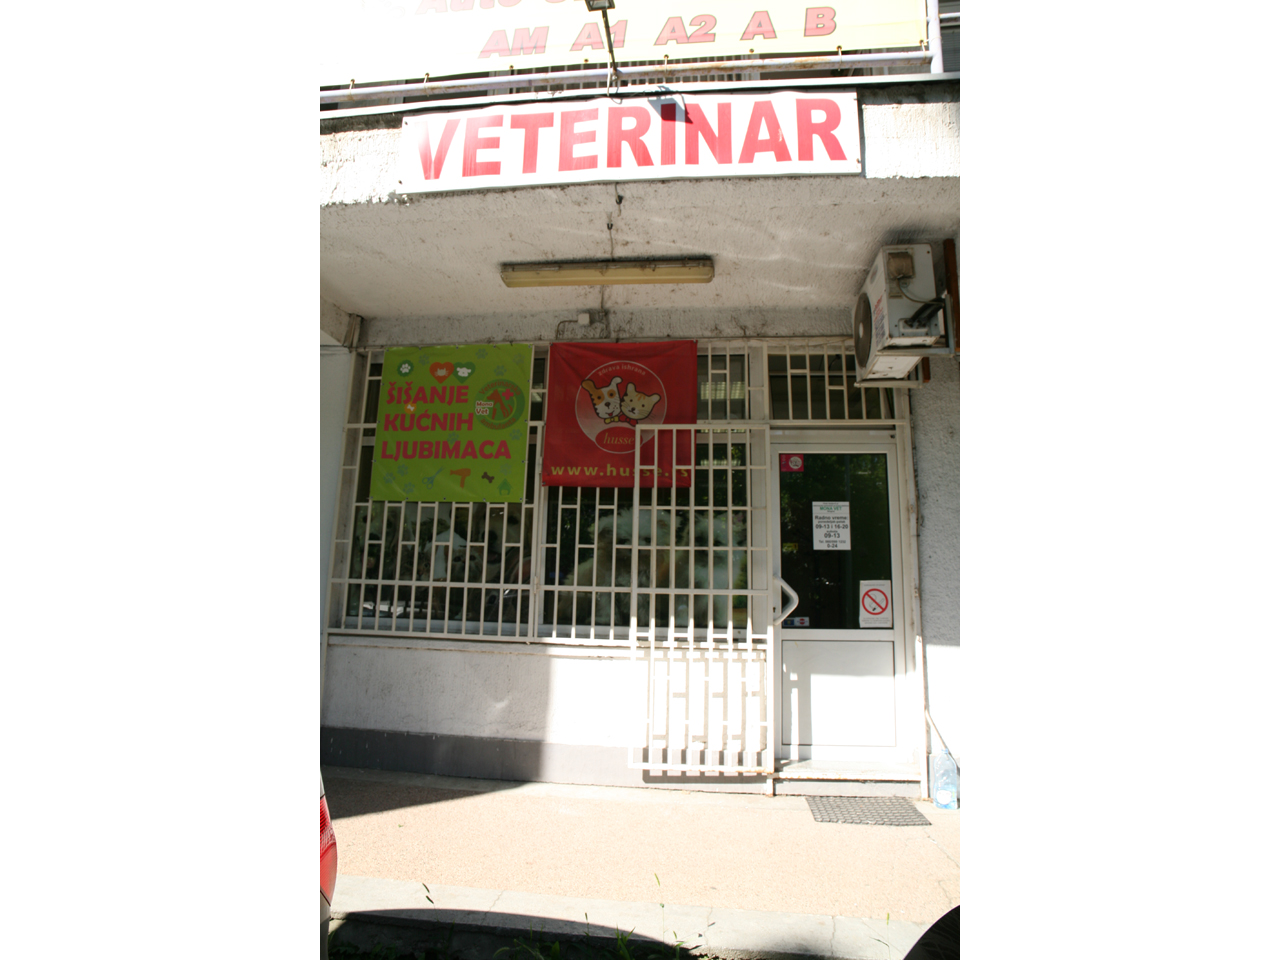 MONA VET VETERINARY AMBULANCE AND DOG GROOMING SALON Pet salon, dog grooming Beograd